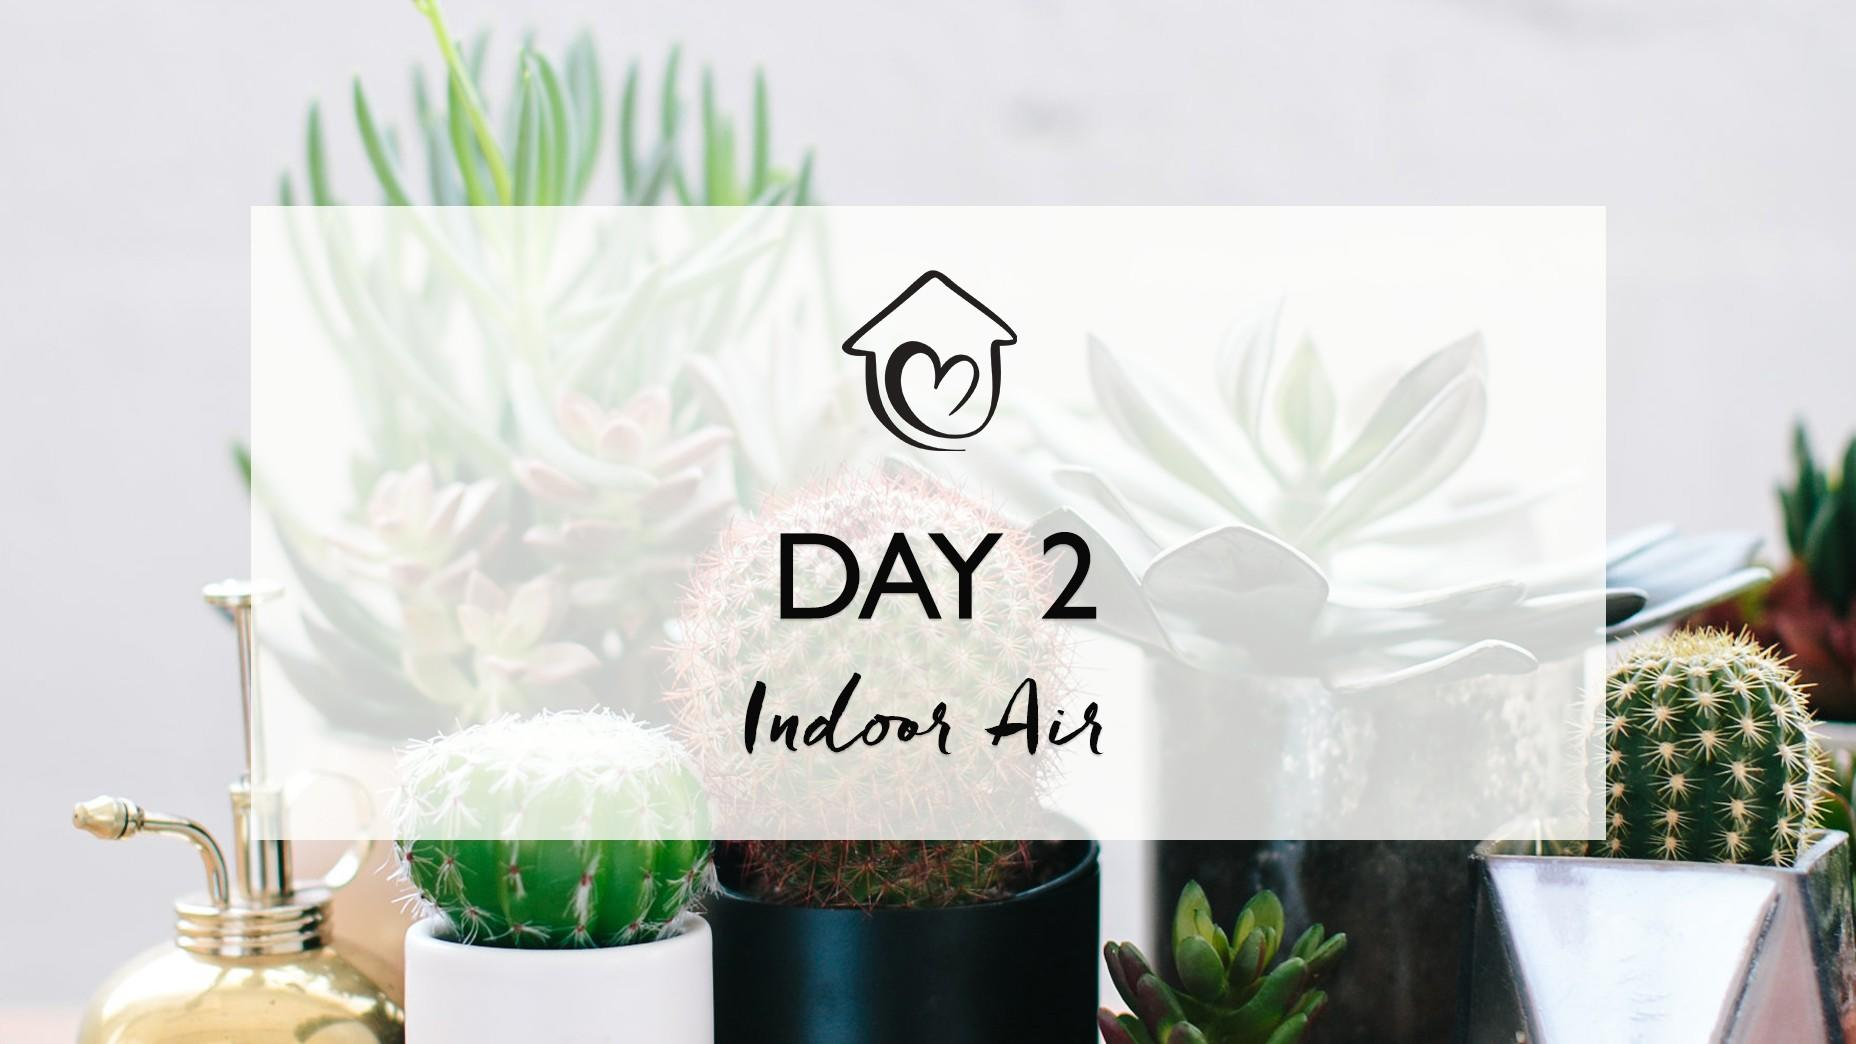 Day 2 - Indoor Air